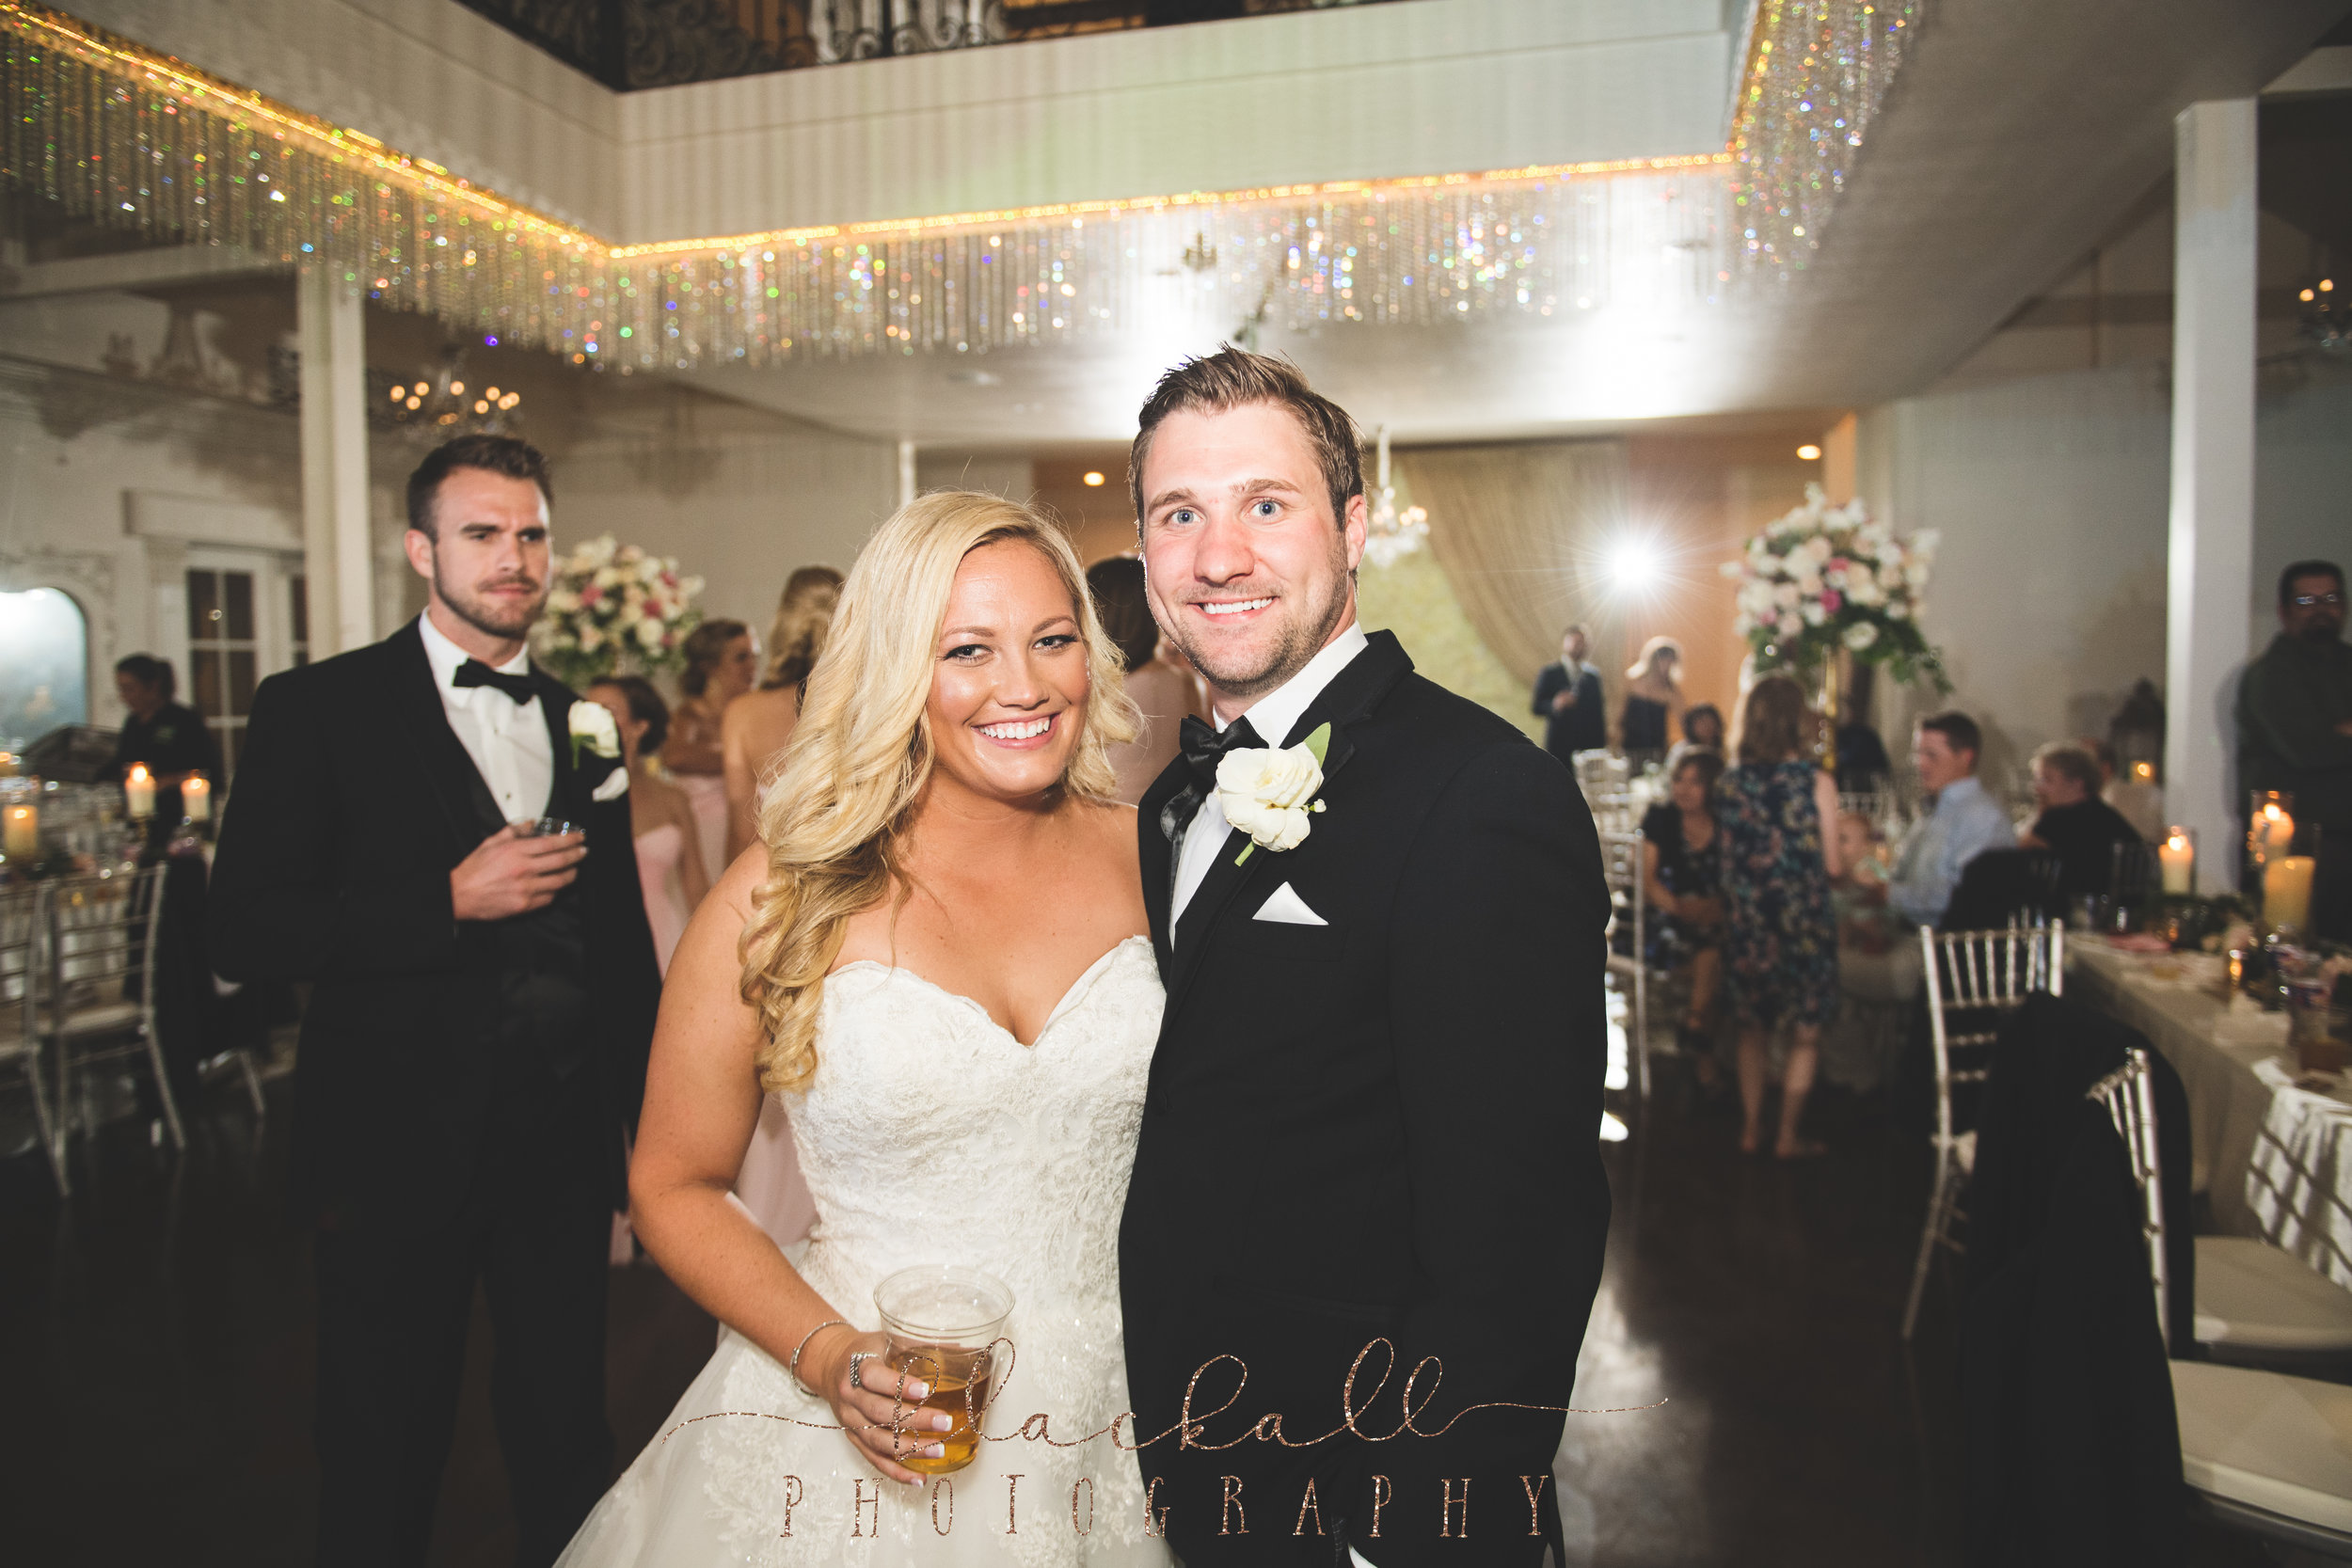 WEDDING_BlackallPhotography_55.JPG